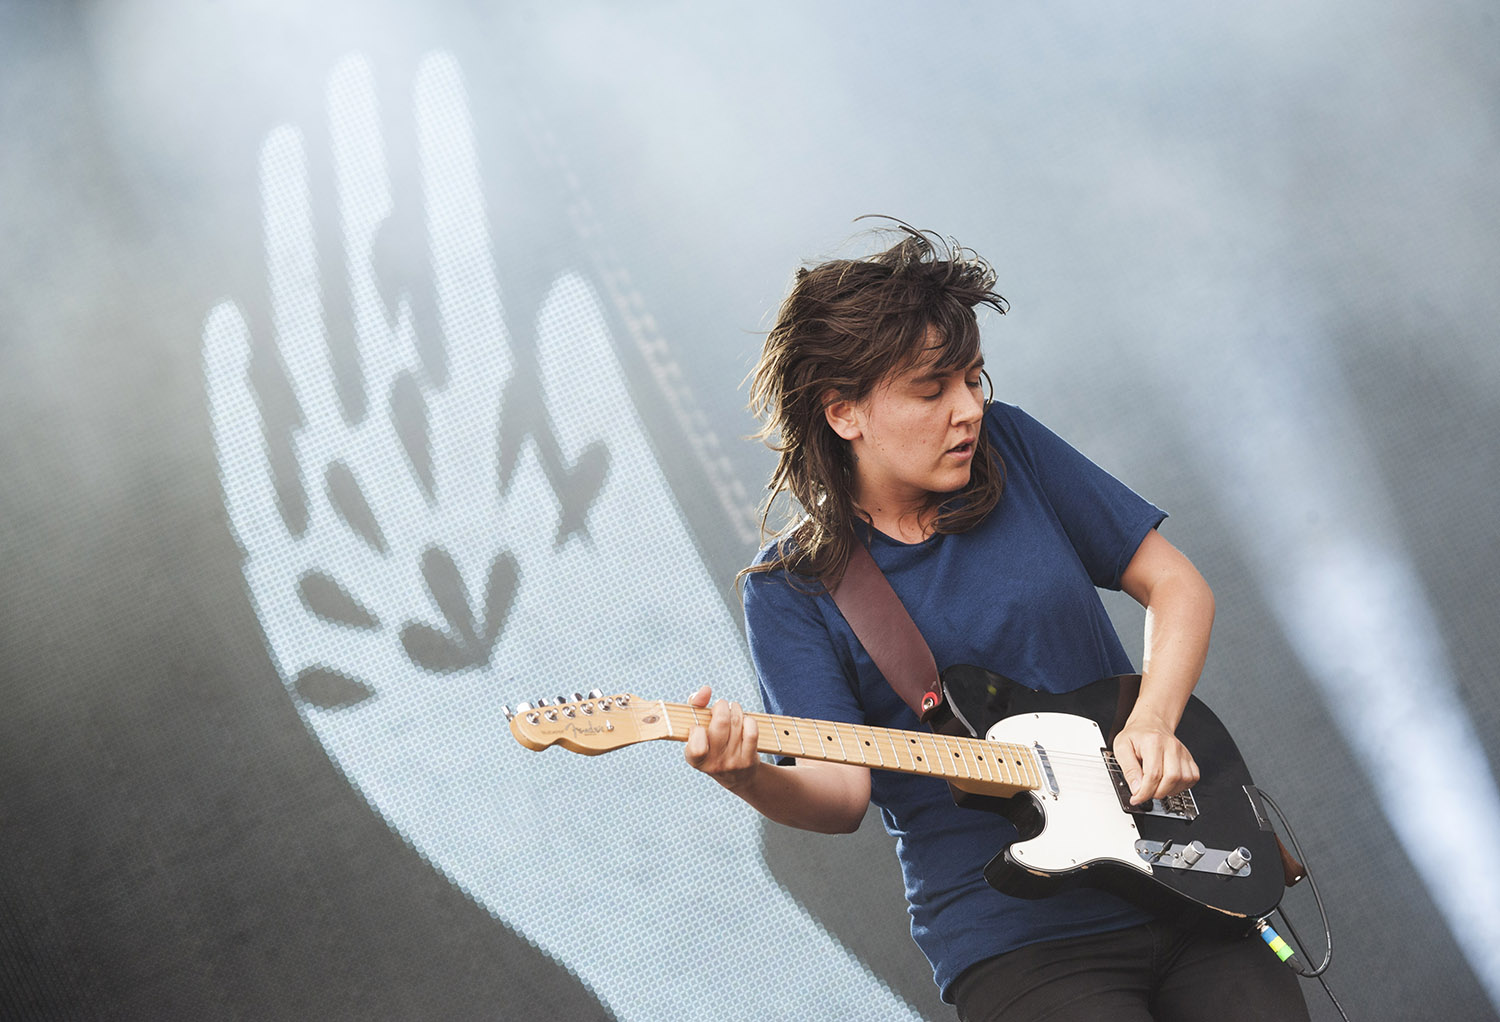 Grammy nominated Courtney Barnett gives it her all on night three of the 2015 Falls Festival - image courtesy of Kirsty Umback.